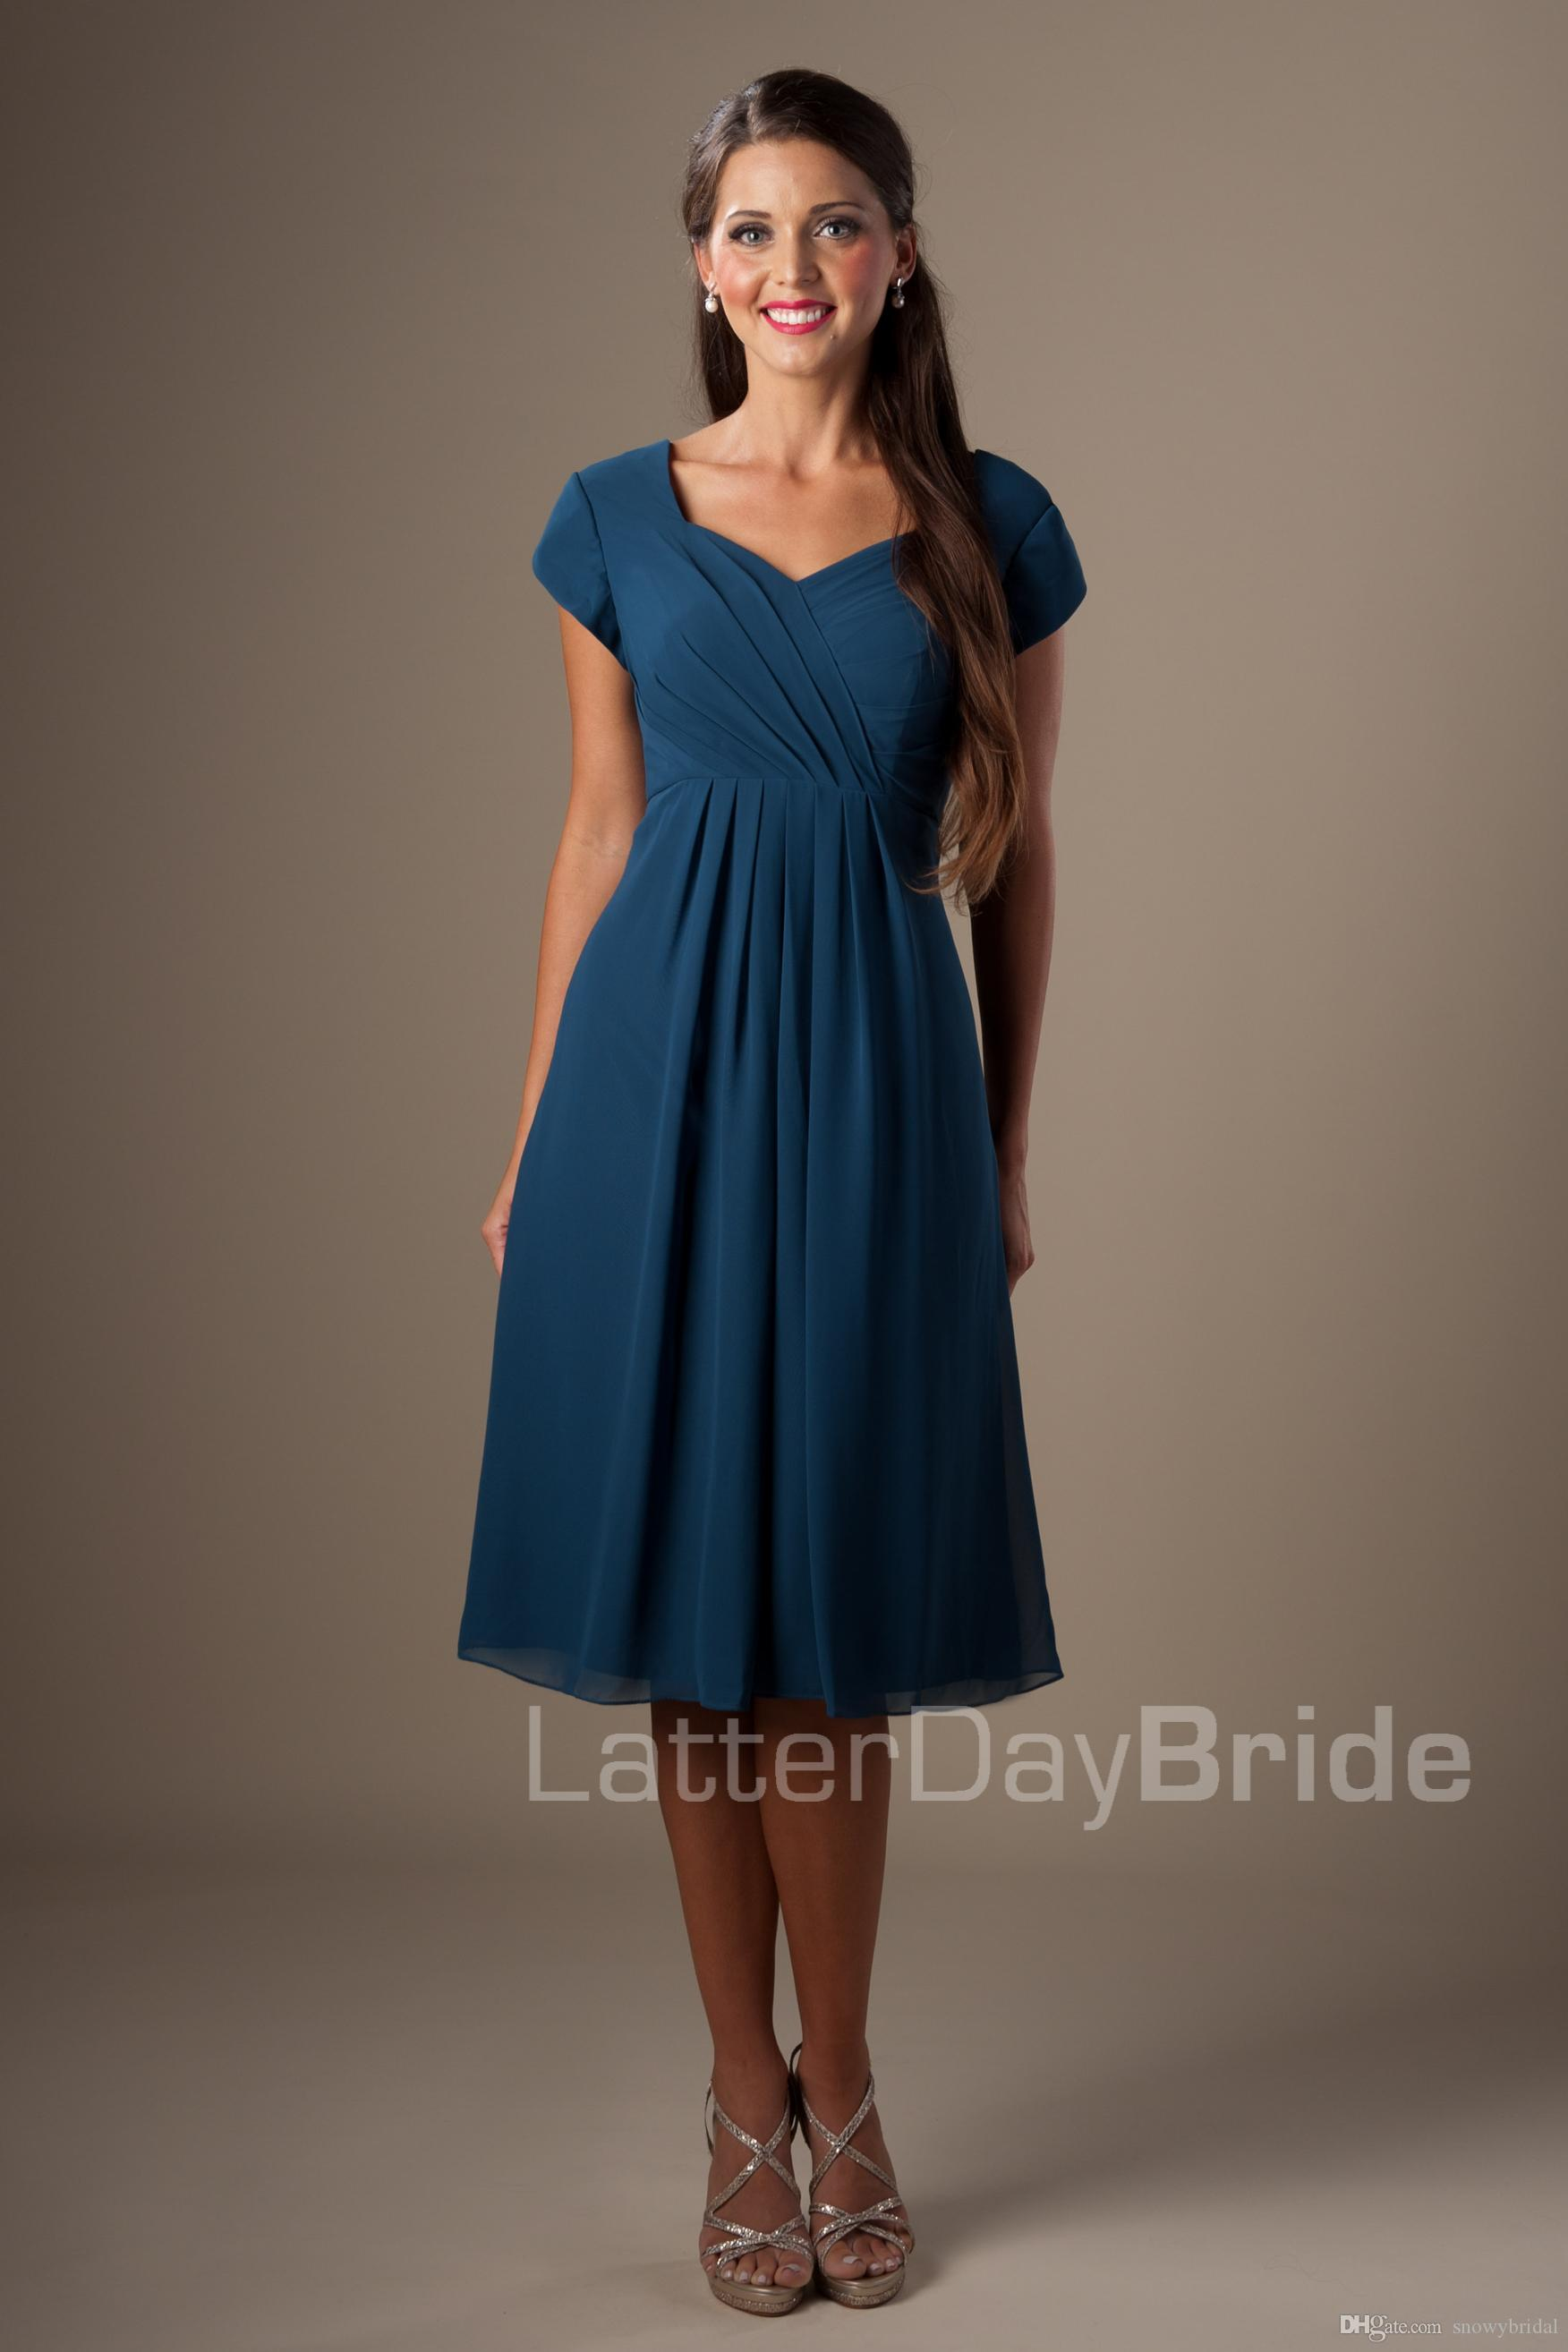 Summer bridesmaid dresses with sleeves